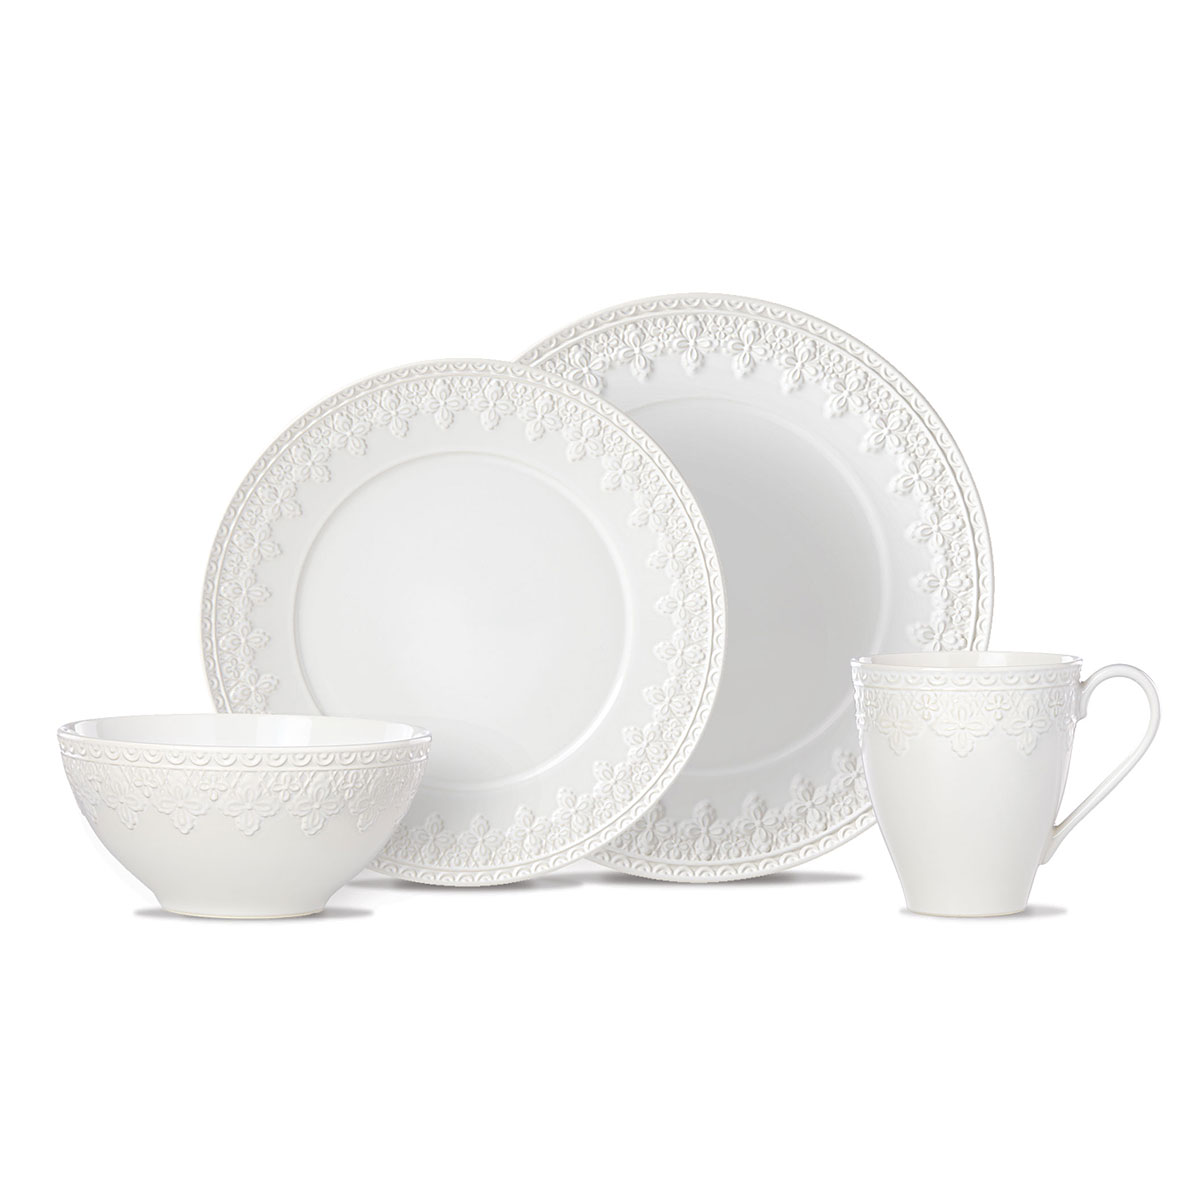 Lenox Chelse Muse Dinnerware Fleur White 4 Piece Place Setting